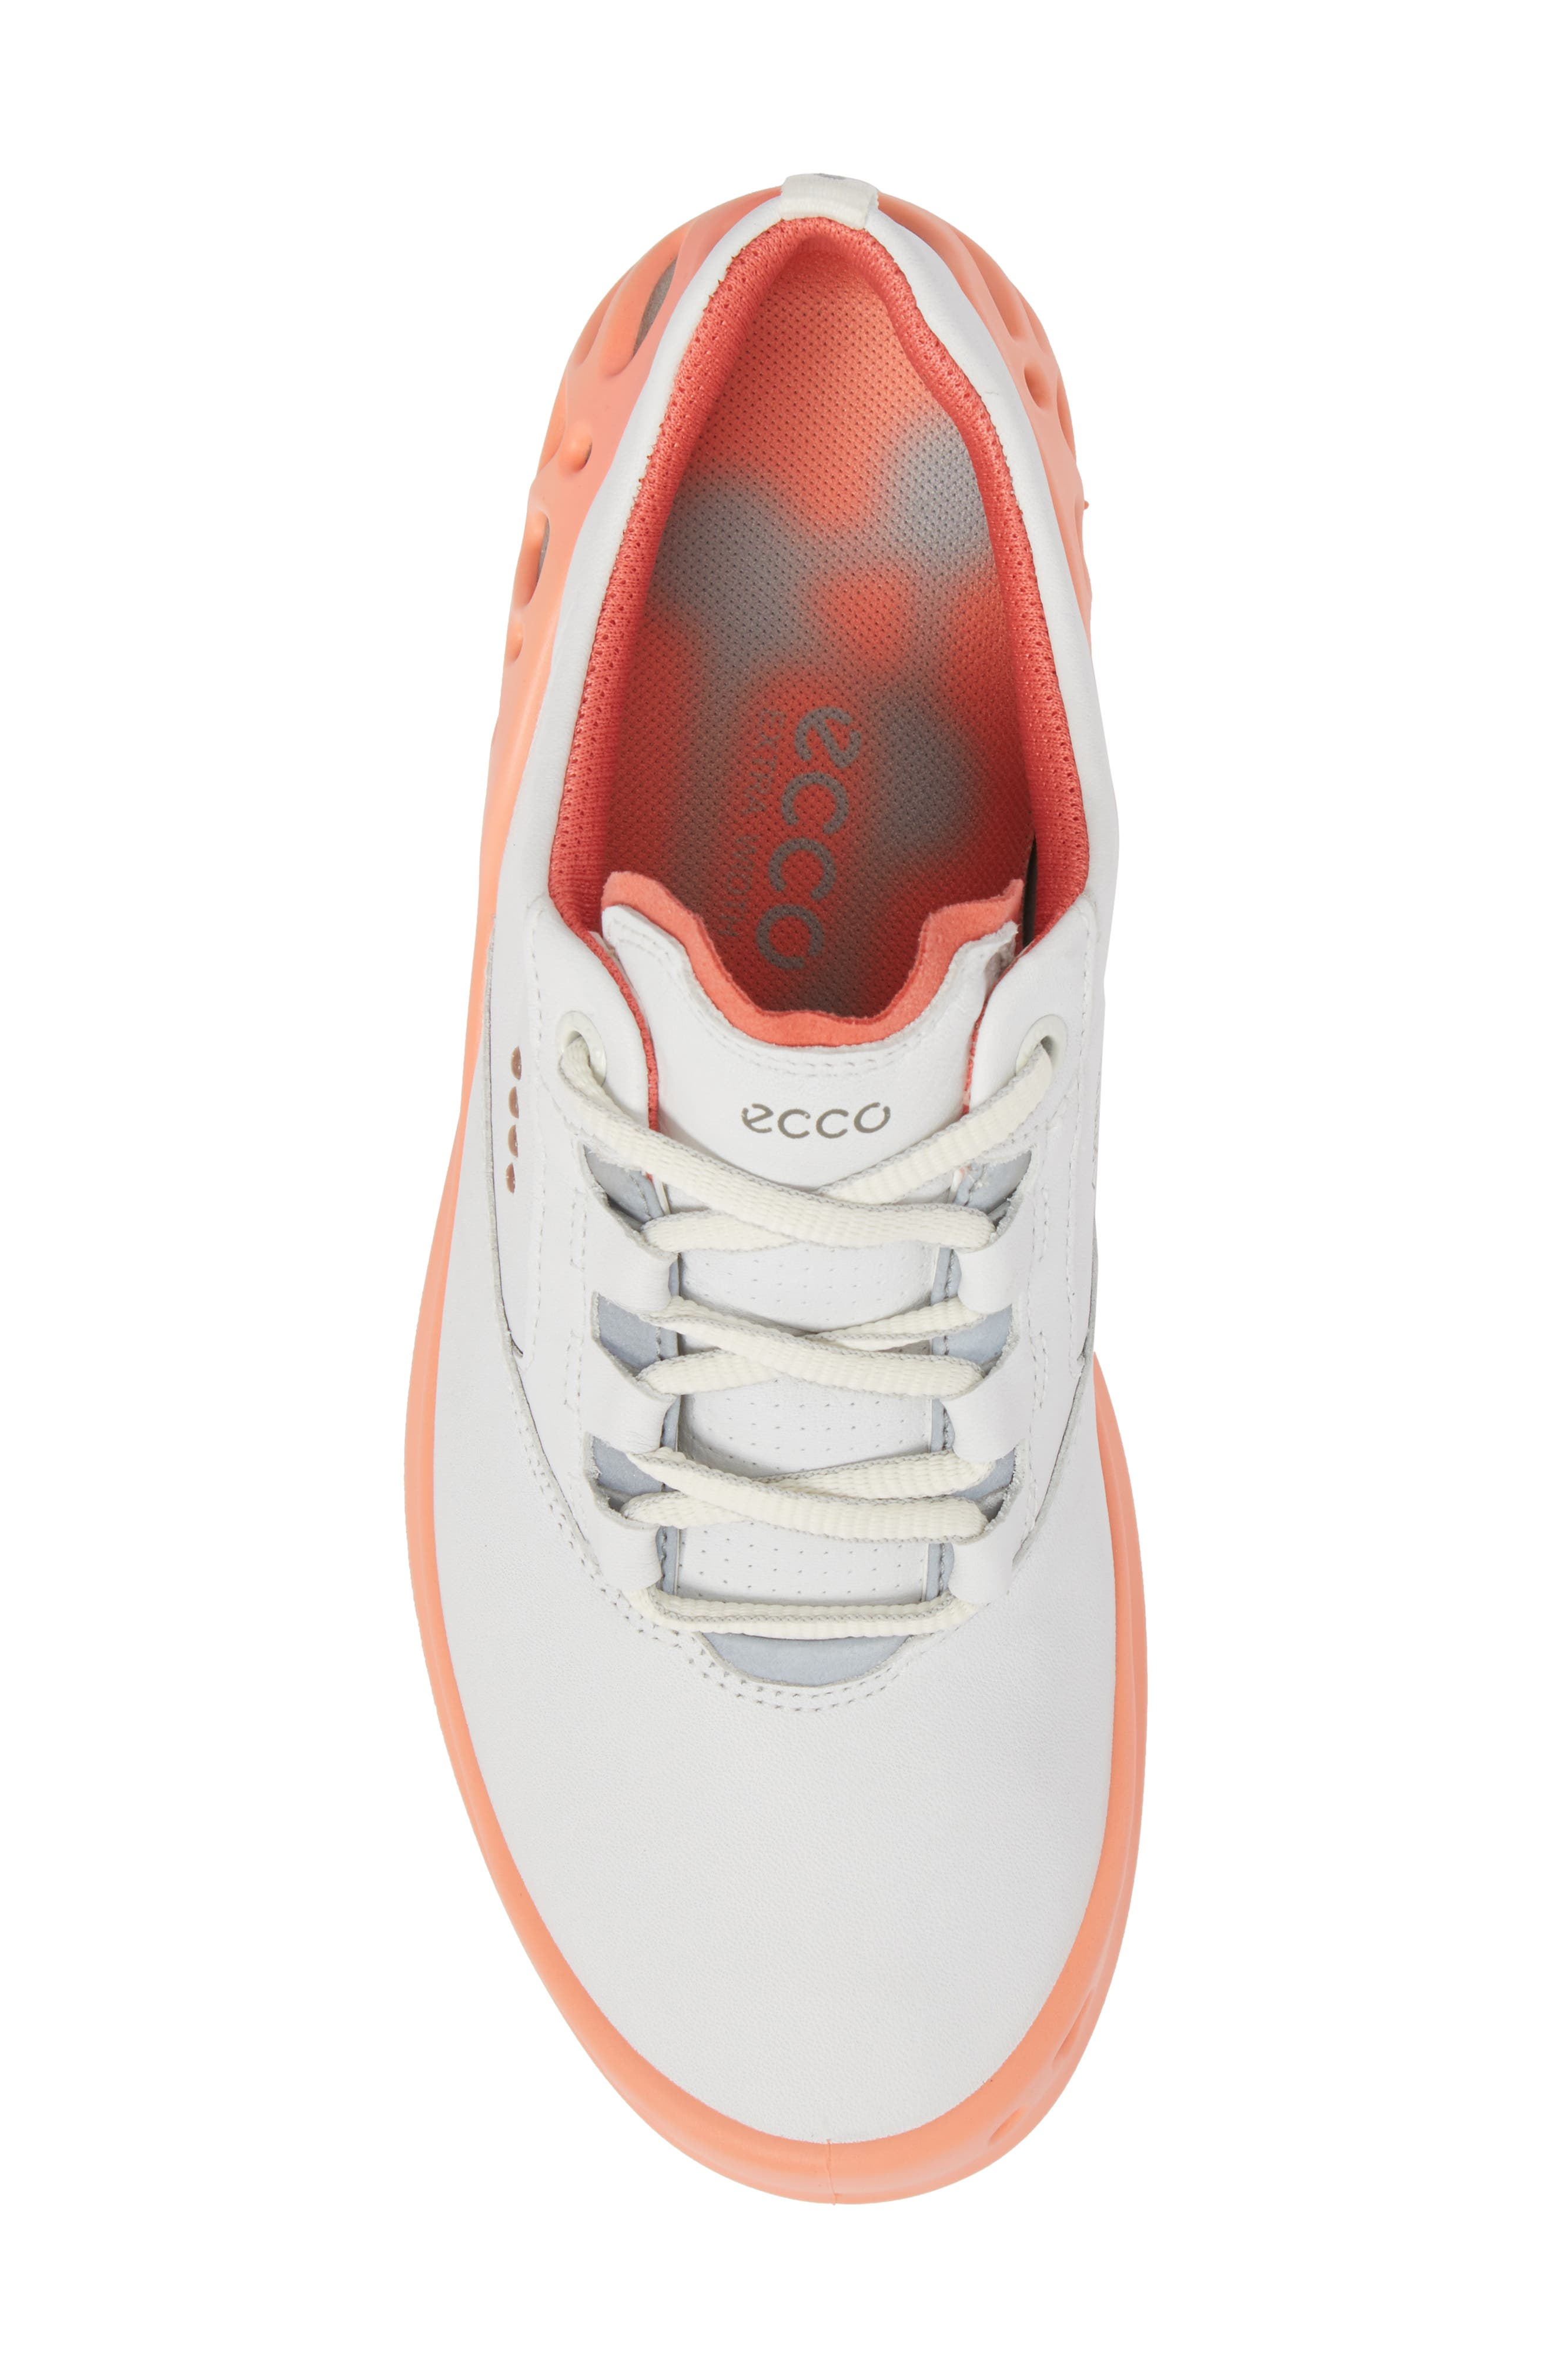 Cage Gore-Tex<sup>®</sup> Golf Shoe,                             Alternate thumbnail 5, color,                             White/ Coral Leather